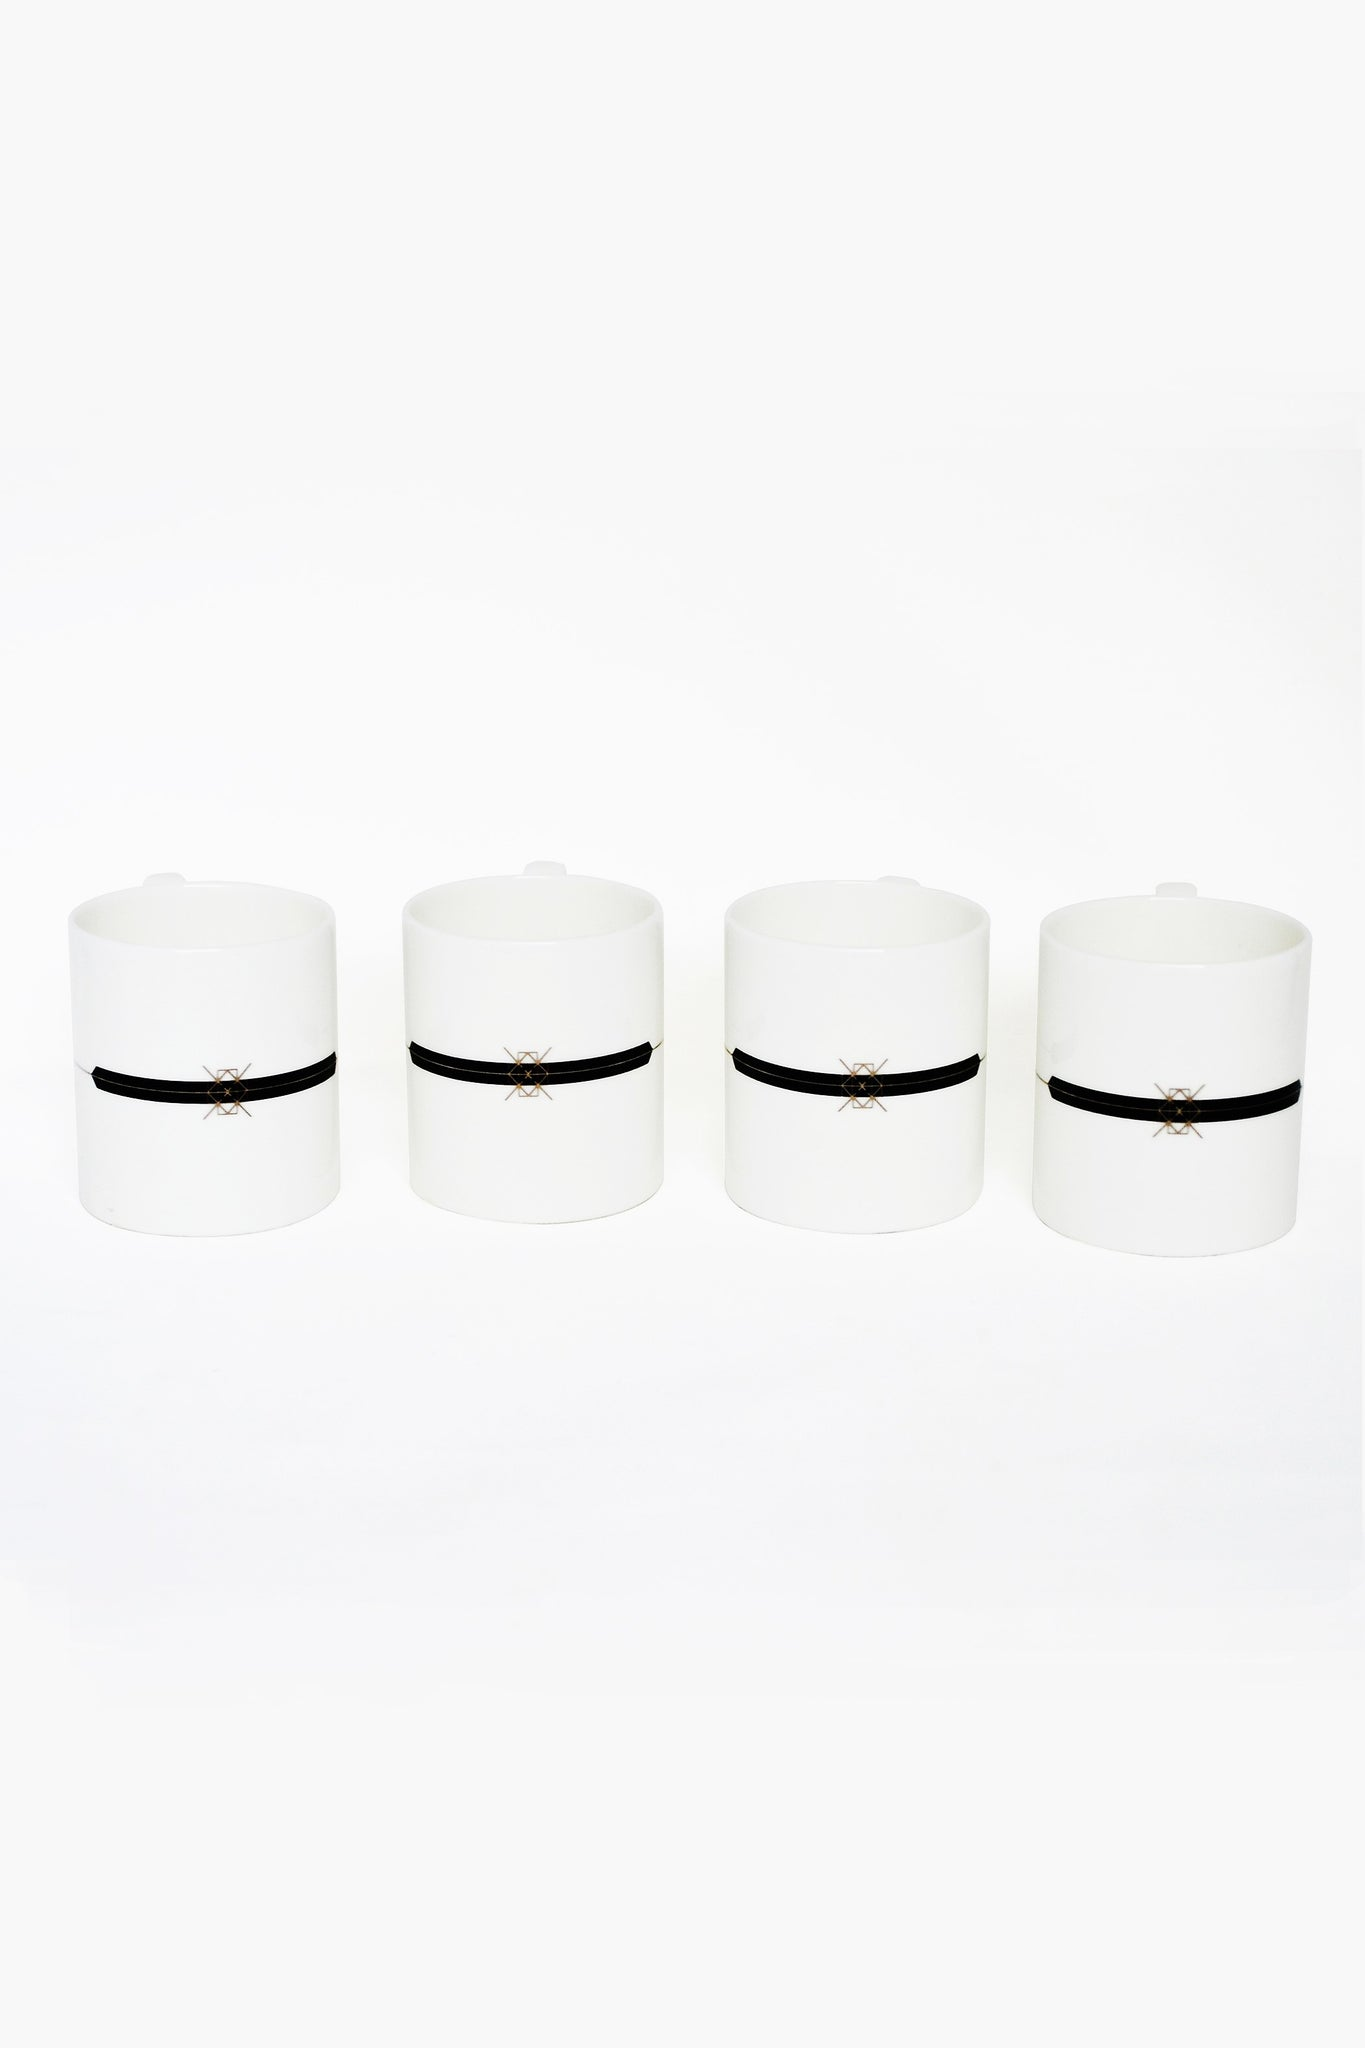 Bidri coffee Mugs Set of 4